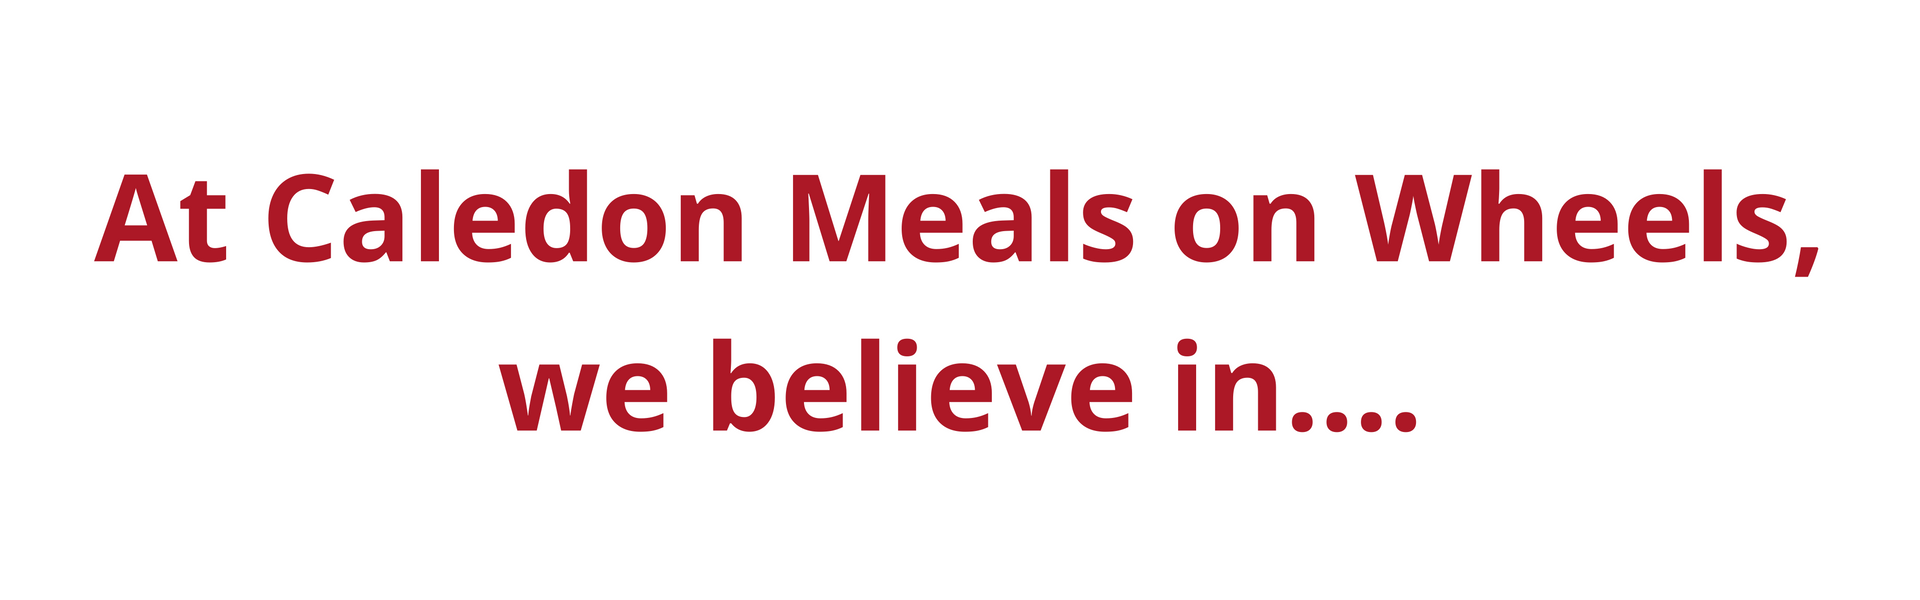 At Caledon Meals on Wheels, we believe in.... copy.png